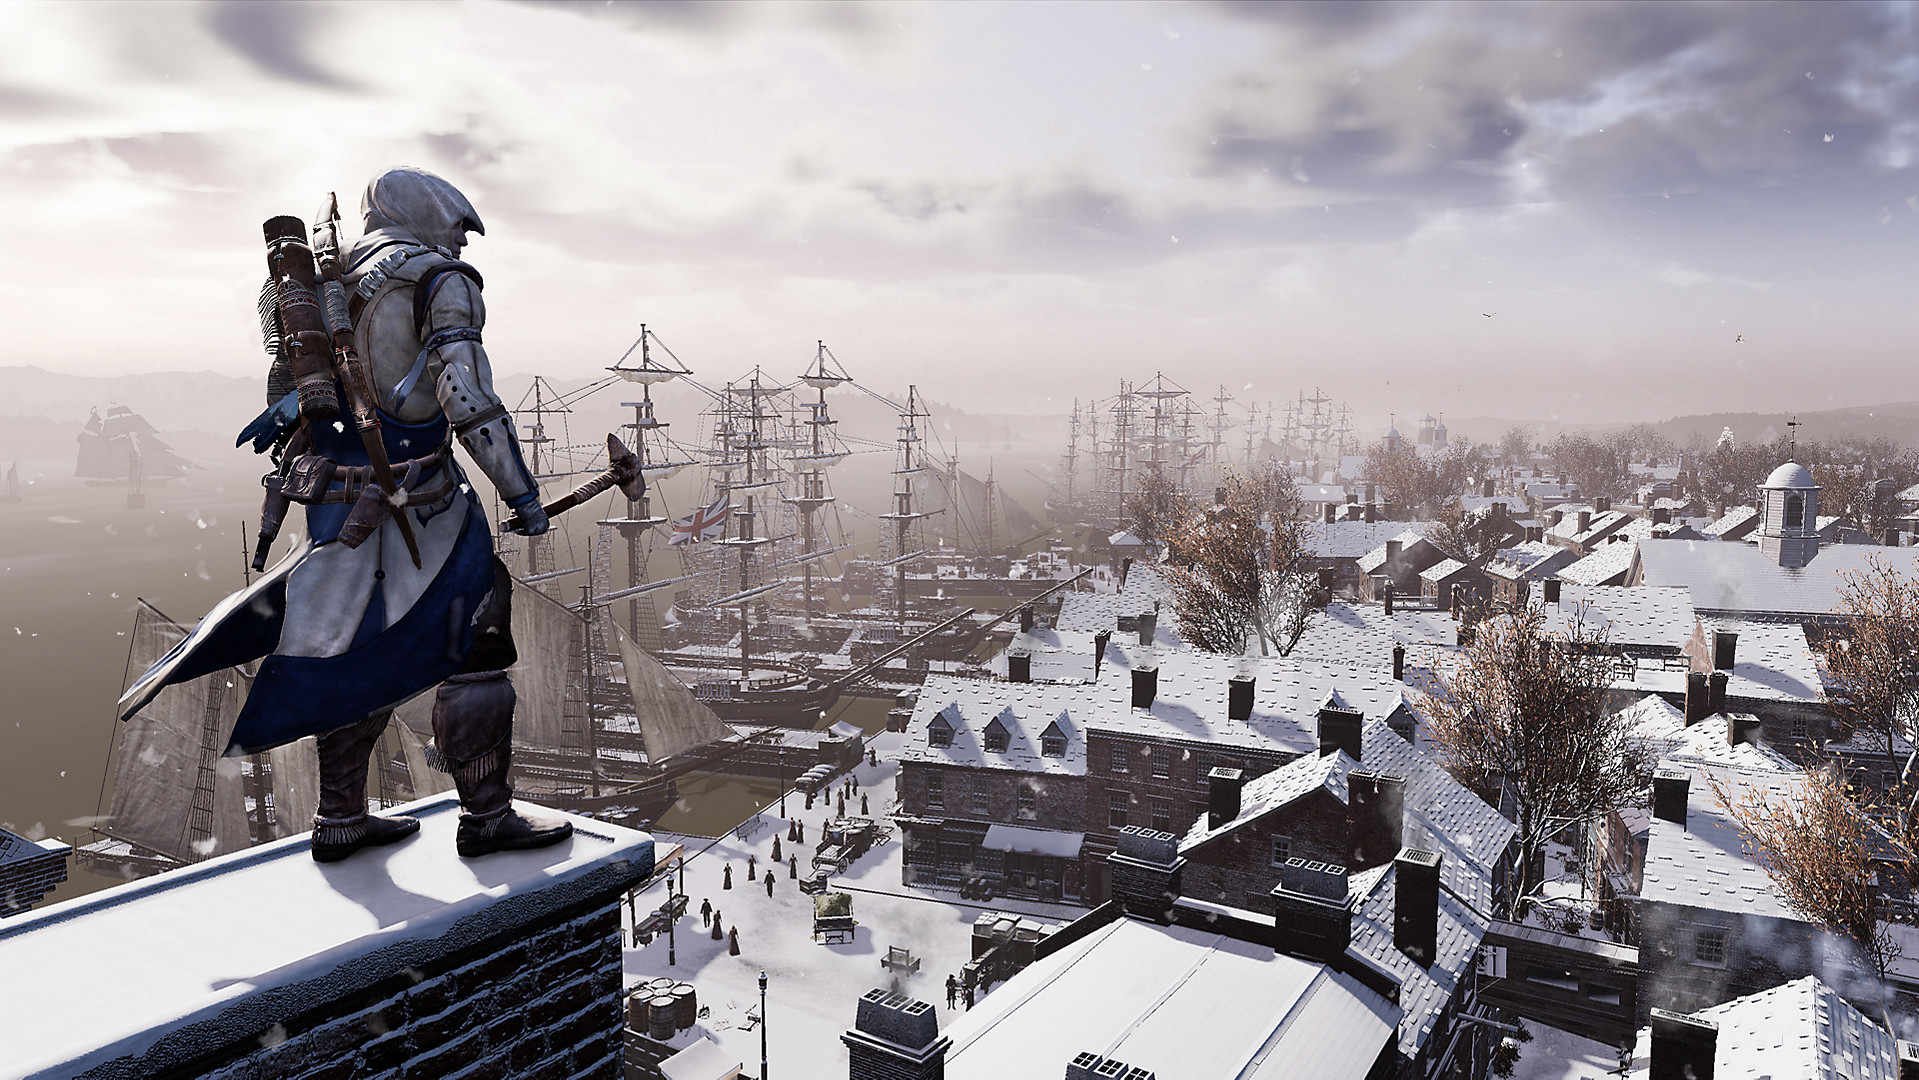 https://media.playstation.com/is/image/SCEA/assassins-creed-iii-remastered-screenshots-02-ps4-us-29mar2019?$native_xxl_nt$